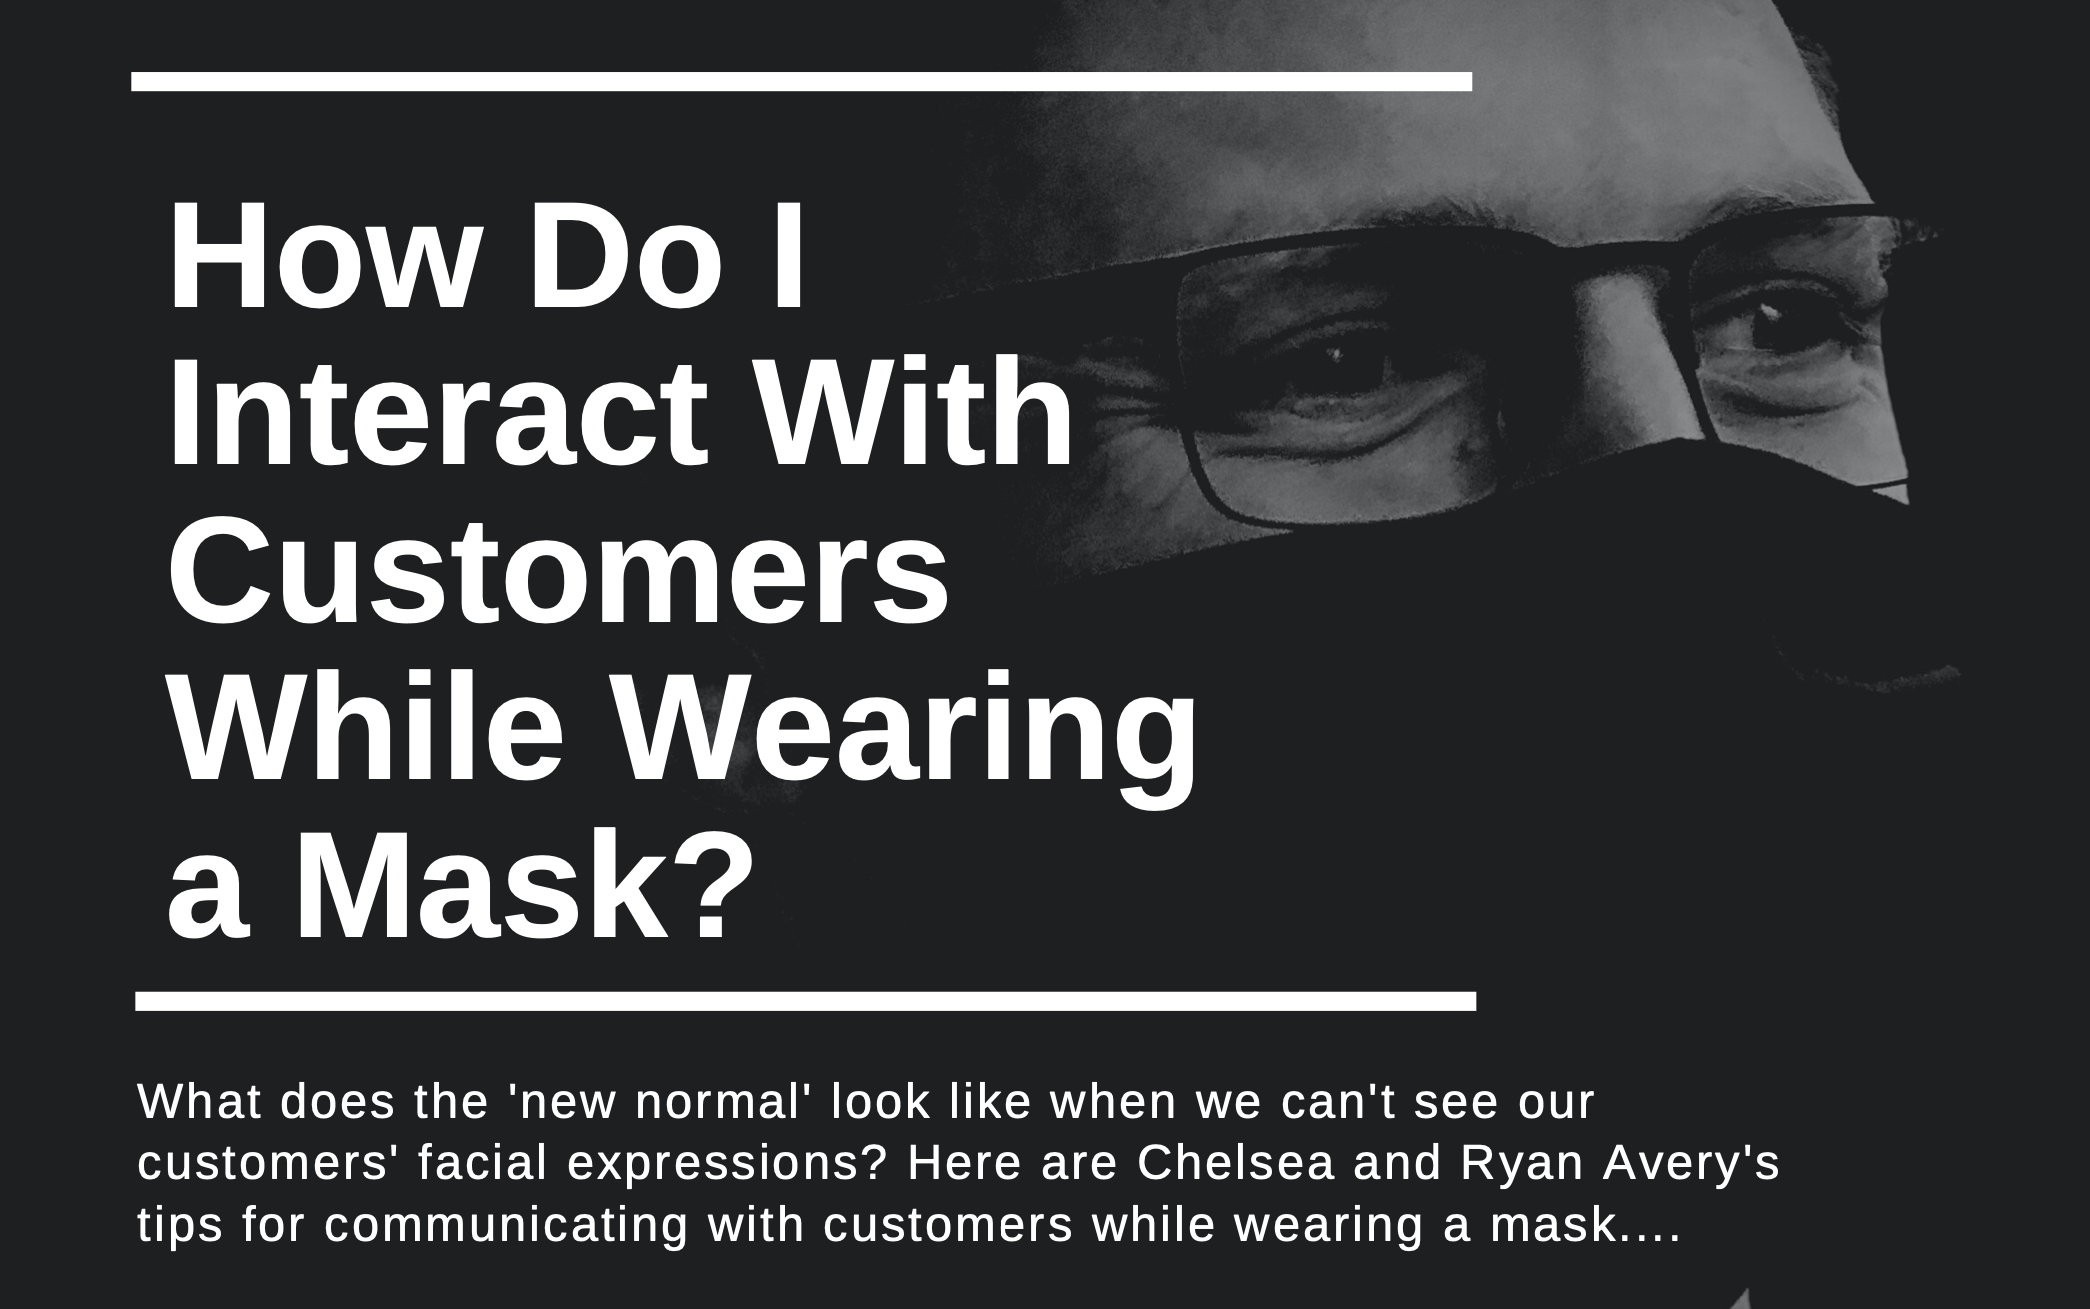 How to Interact With Customers While Wearing a Mask